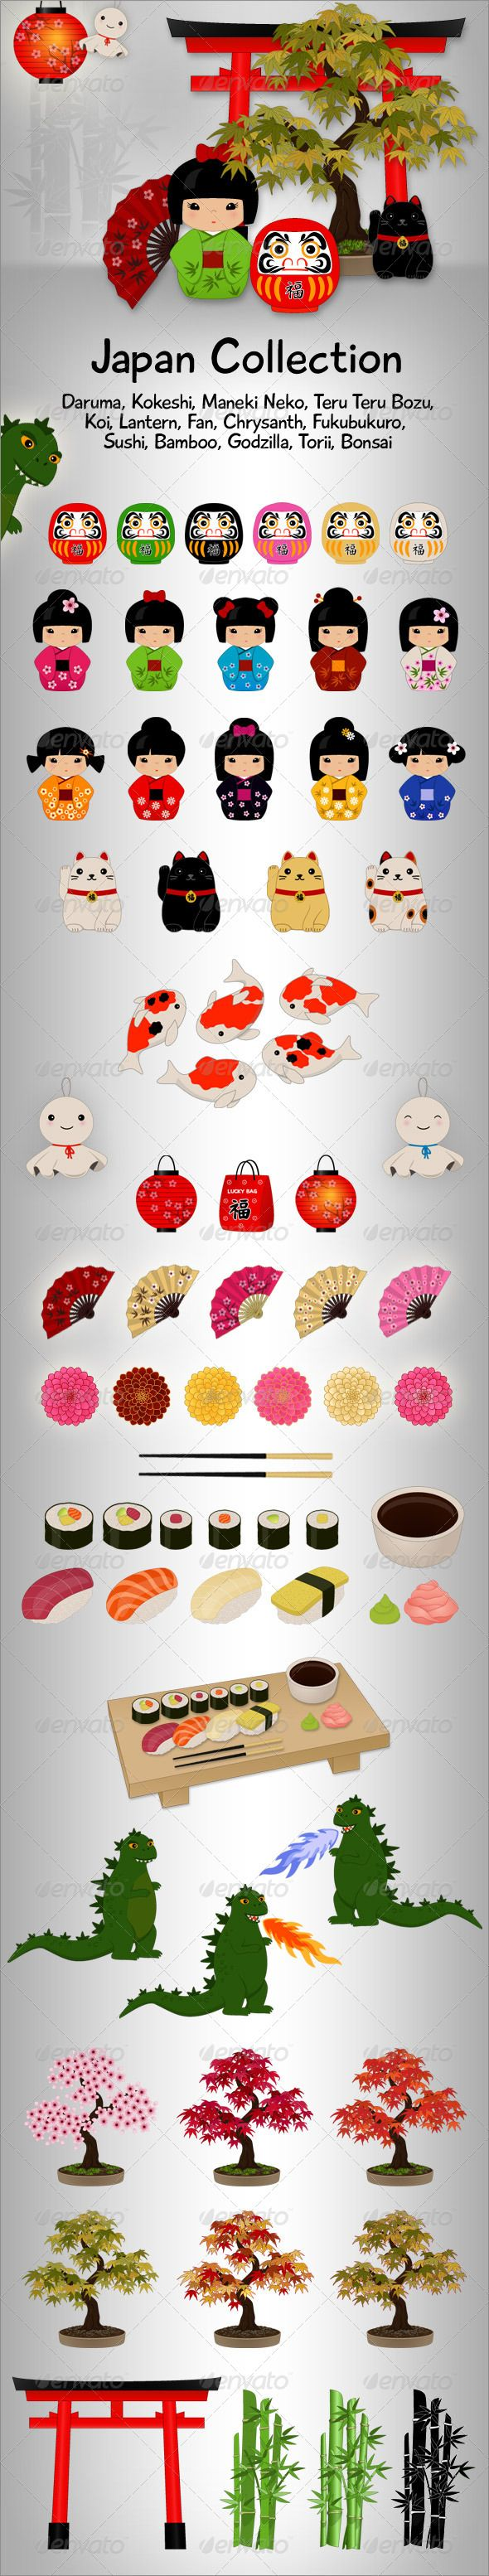 Japan Collection  #GraphicRiver         This Japan Collection contain vector graphics:  	 - Daruma - Kokeshi - Maneki Neko - Teru Teru Bozu - Koi - Lantern - Fan - Chrysanth - Fukubukuro (Lucky Bag) - Sushi - Bamboo - Godzilla - Torii - Bonsai   	 Included in ZIP file:  	 - 1 AI, 3 EPS parts     Created: 4March13 GraphicsFilesIncluded: VectorEPS #AIIllustrator Layered: Yes MinimumAdobeCSVersion: CS Tags: Fukubukuro #LuckyBag #LuckySymbol #bamboo #bonsai #cat #chrysanth #daruma #doll #fan…